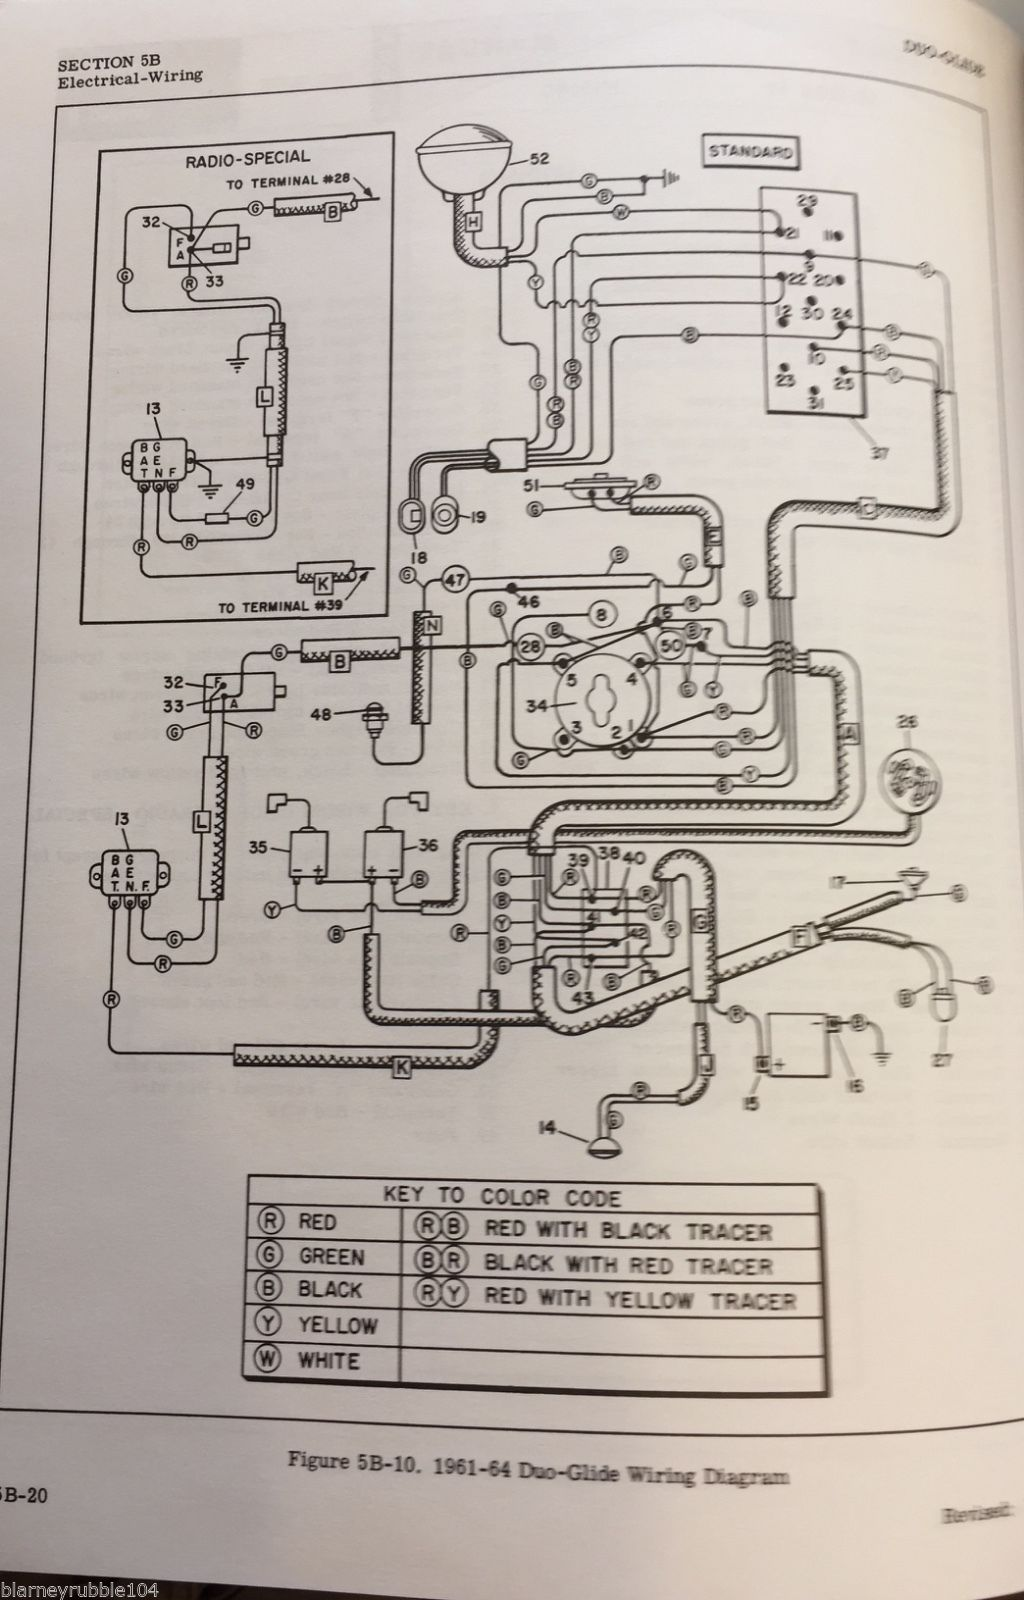 1999 Heritage Softail Wiring Diagram Wiring Library